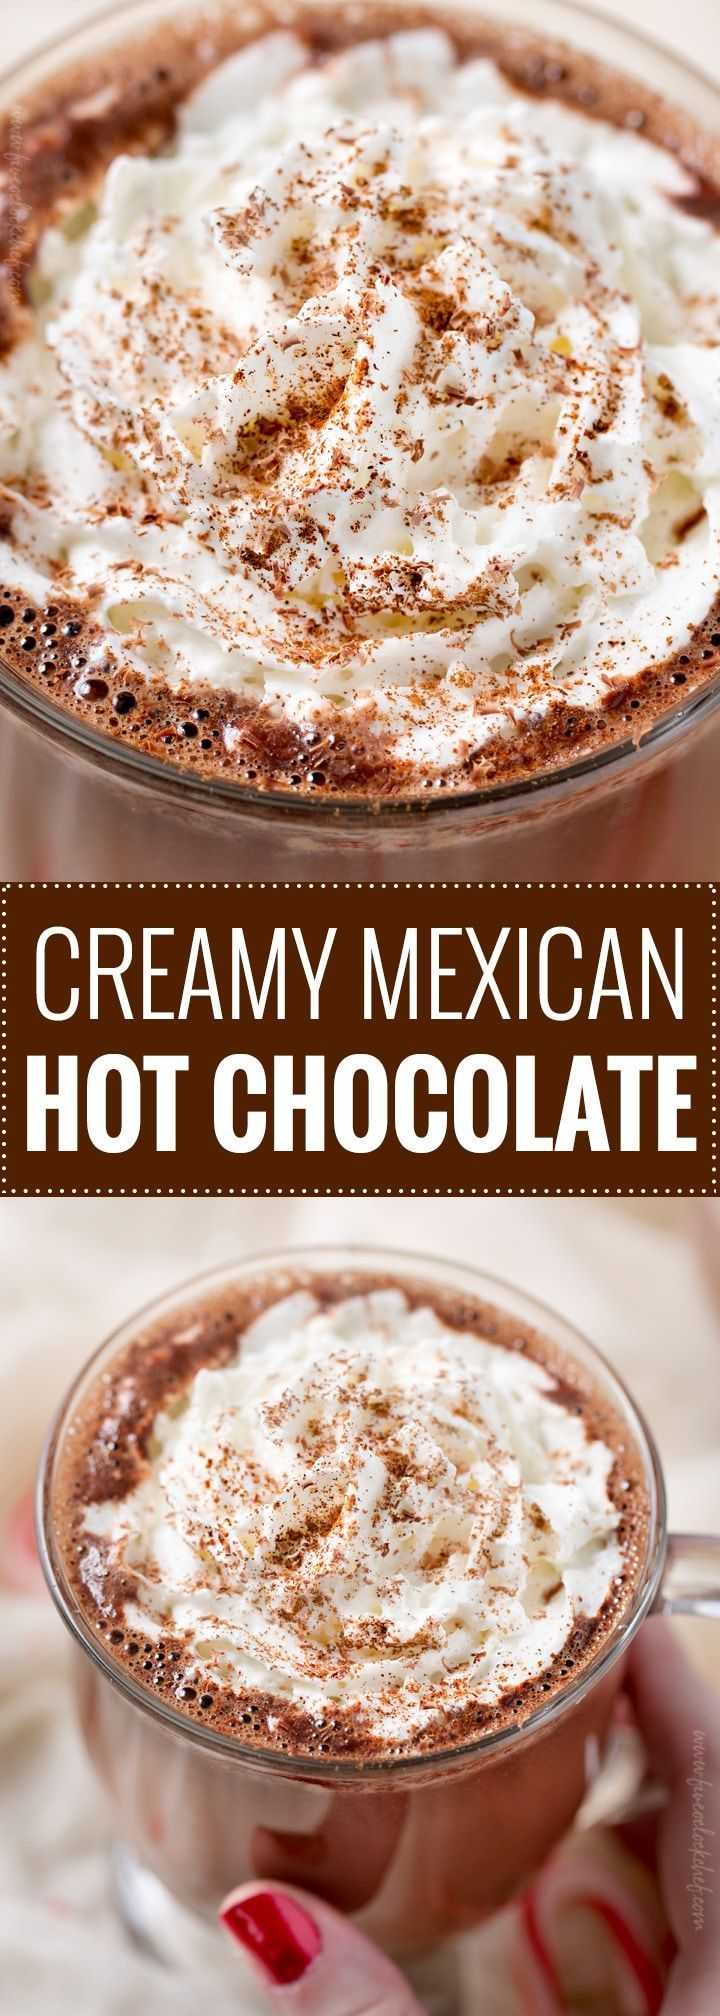 Ultra Creamy Mexican Hot Chocolate | Rich and creamy, Mexican hot chocolate will warm you up from the inside out! Made with melted chocolate, vanilla, cinnamon and a pinch of cayenne for kick, this recipe is easy to spike for an adult beverage treat! | The 5 o'clock Chef | #hotchocolate #mexicanhotchocolate #holidaydrink #hotchocolaterecipe